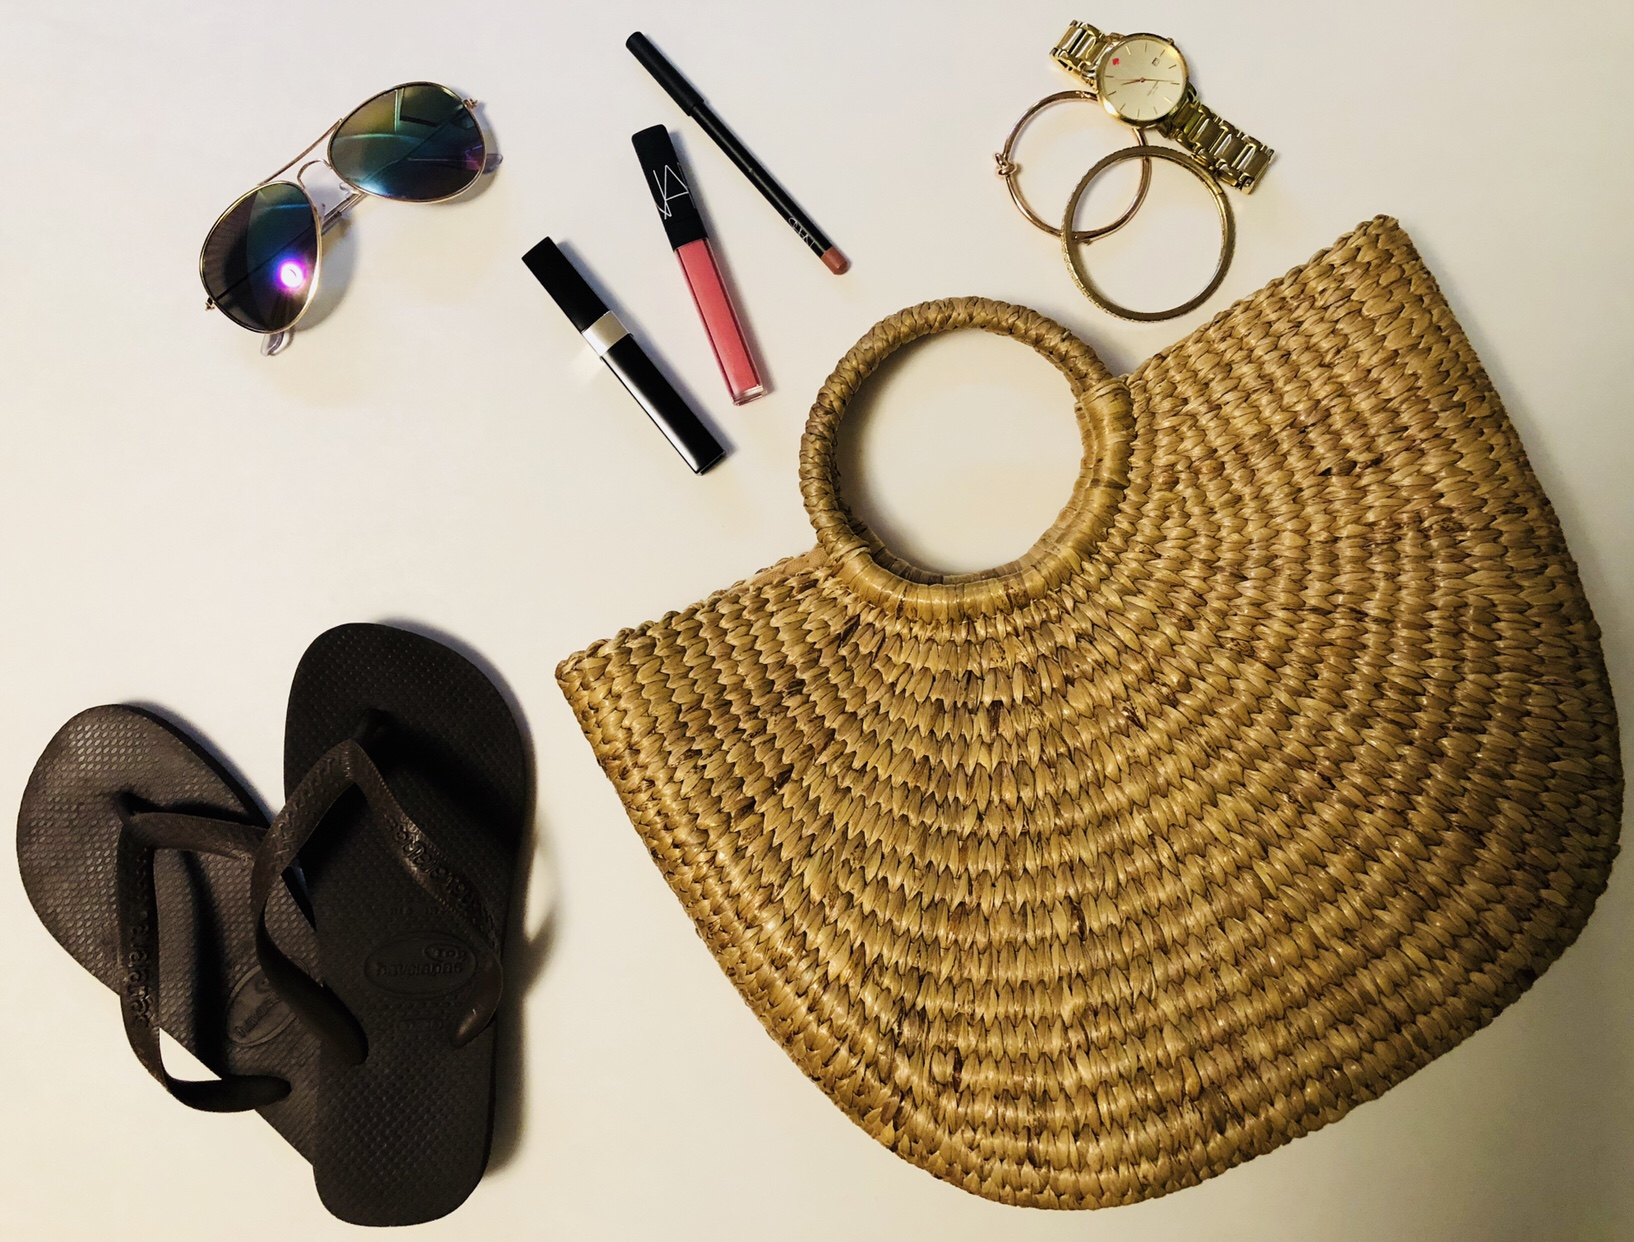 straw handbag flat lay with accessories